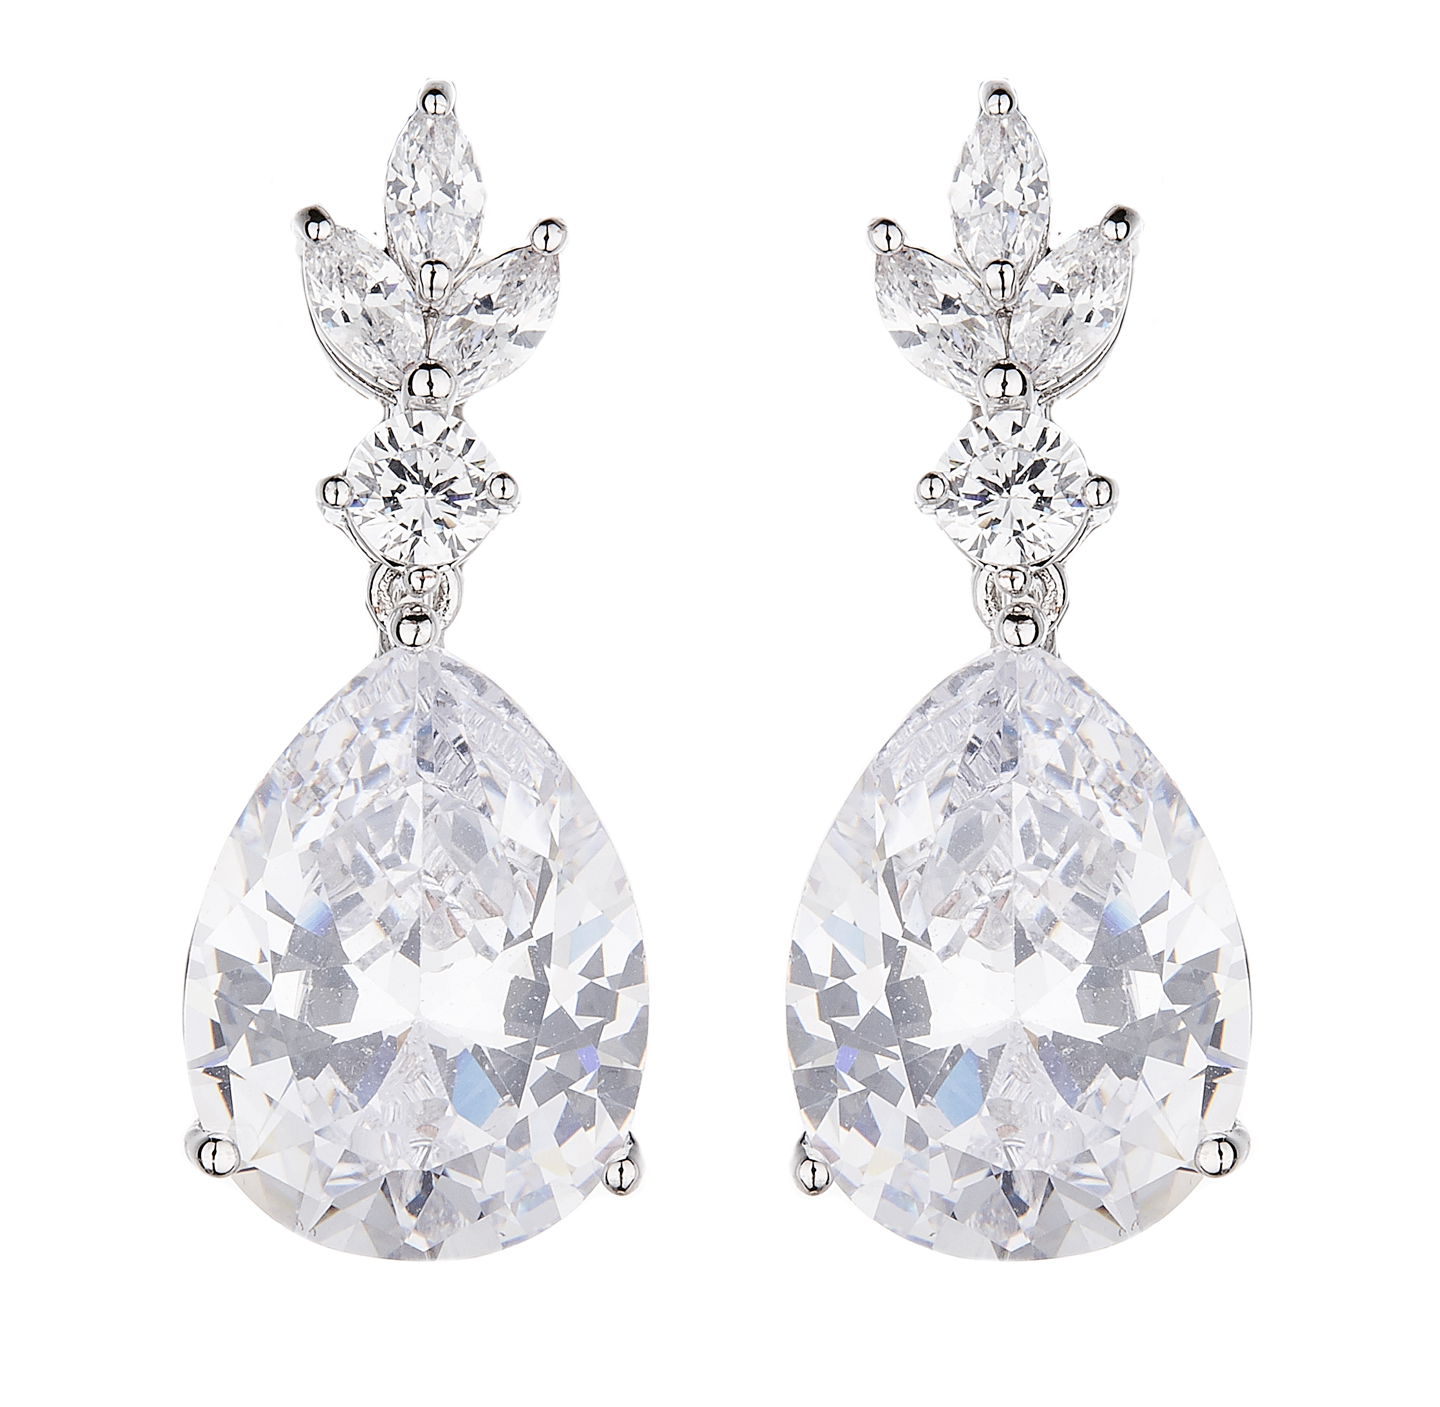 Clip On Earrings - Nala - silver luxury drop earring with cubic zirconia crystals and stones